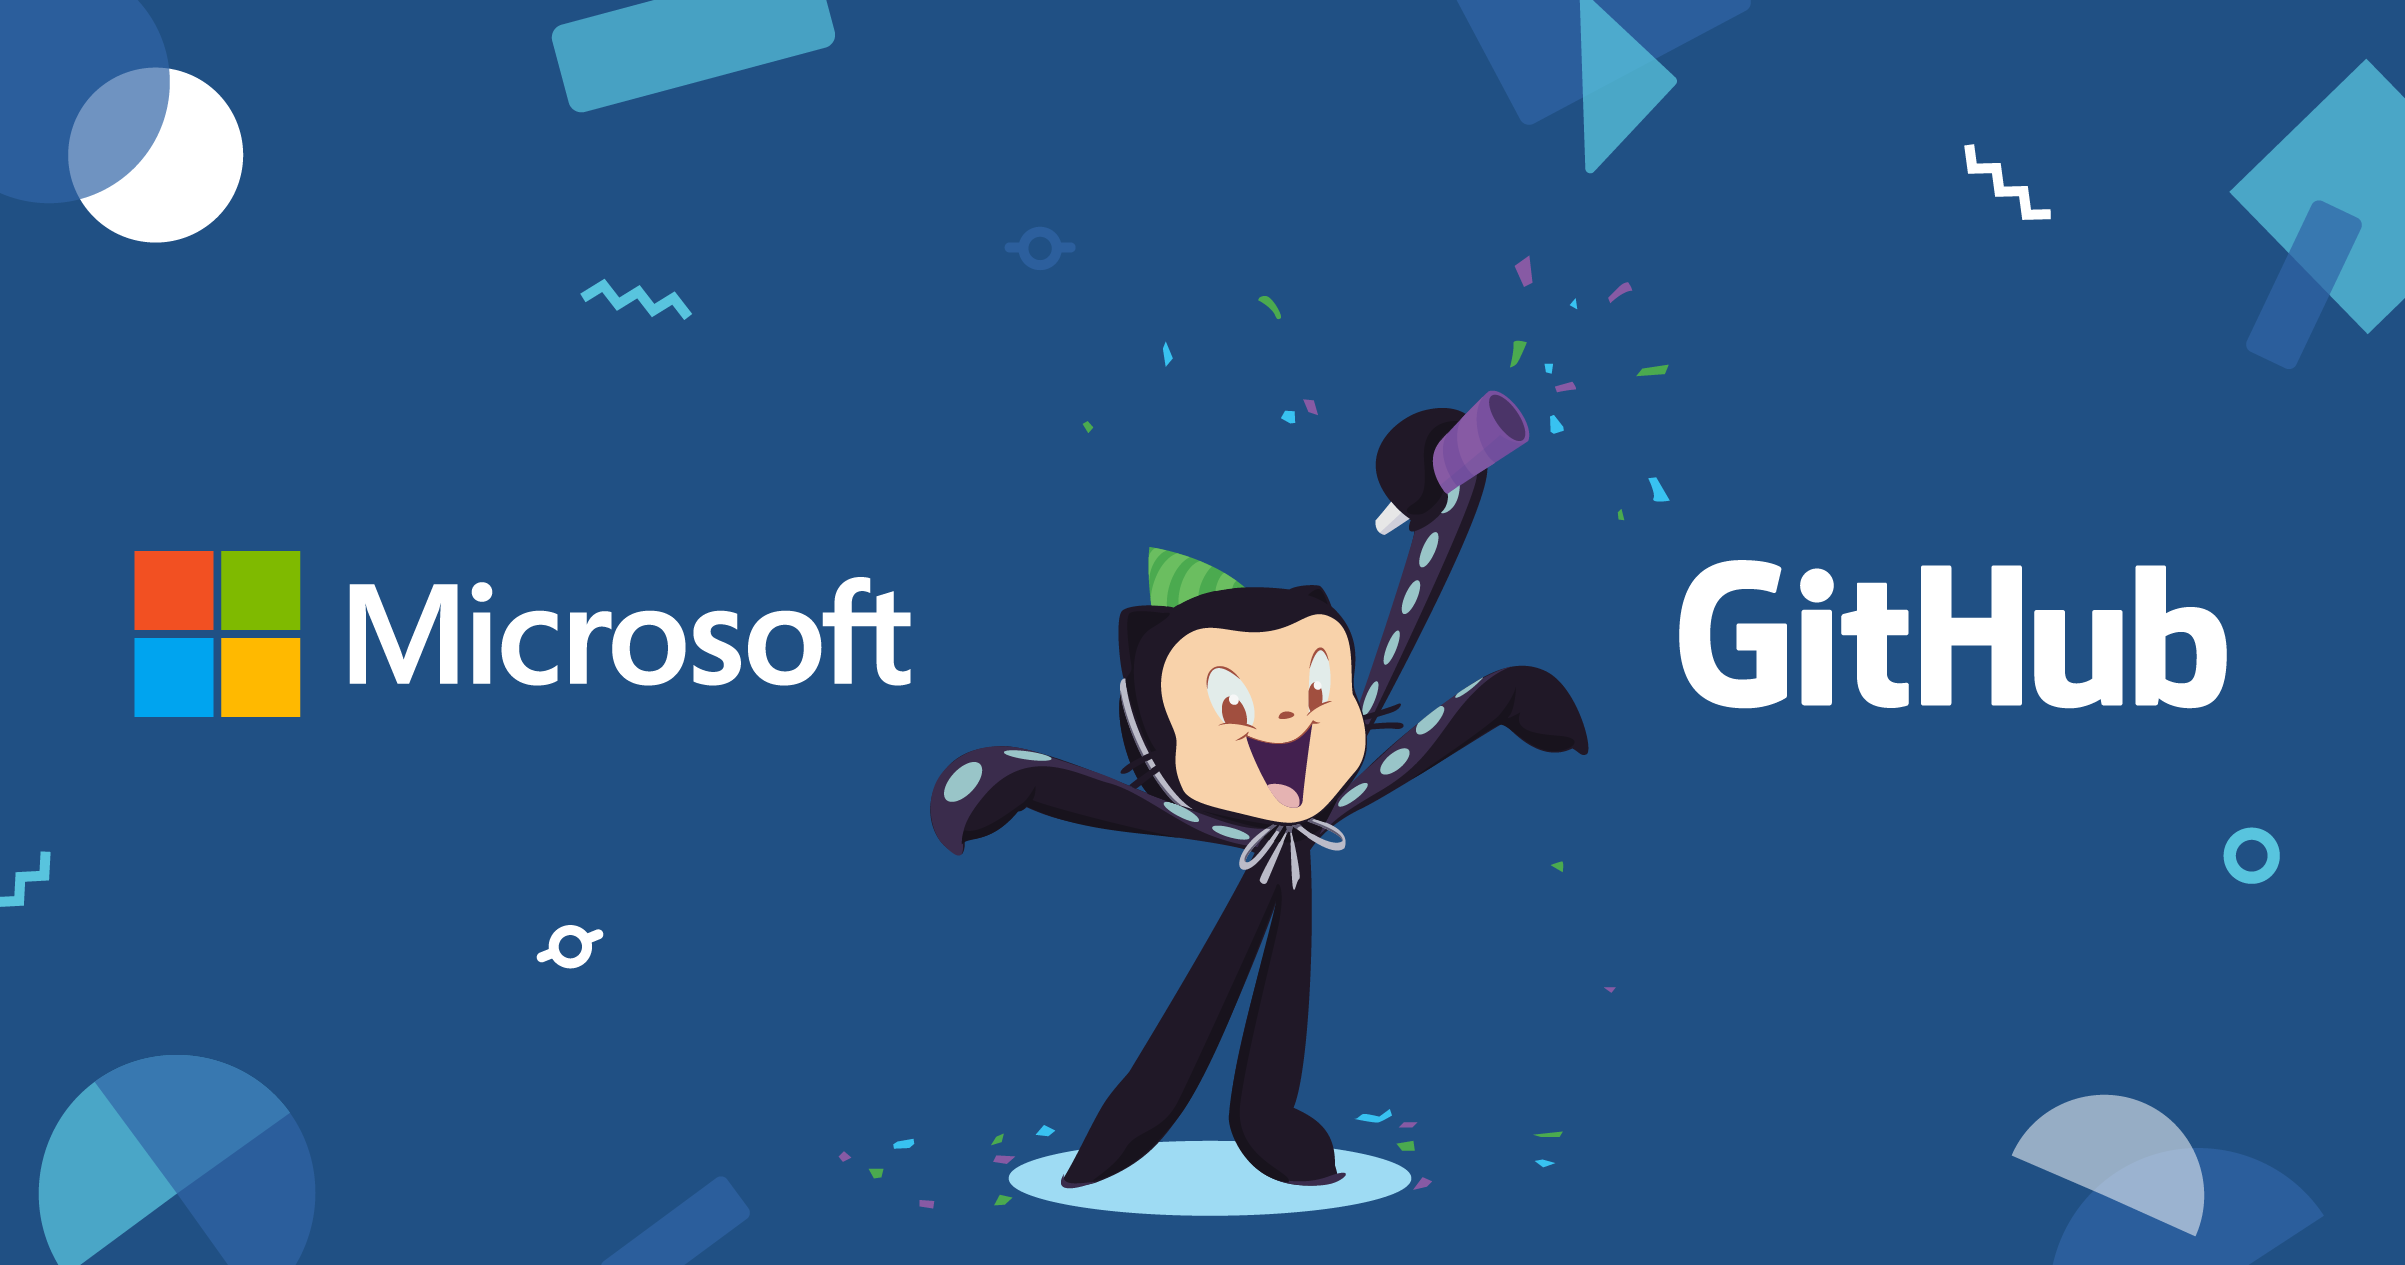 Microsoft to take on Amazon with $7.5 bln GitHub deal